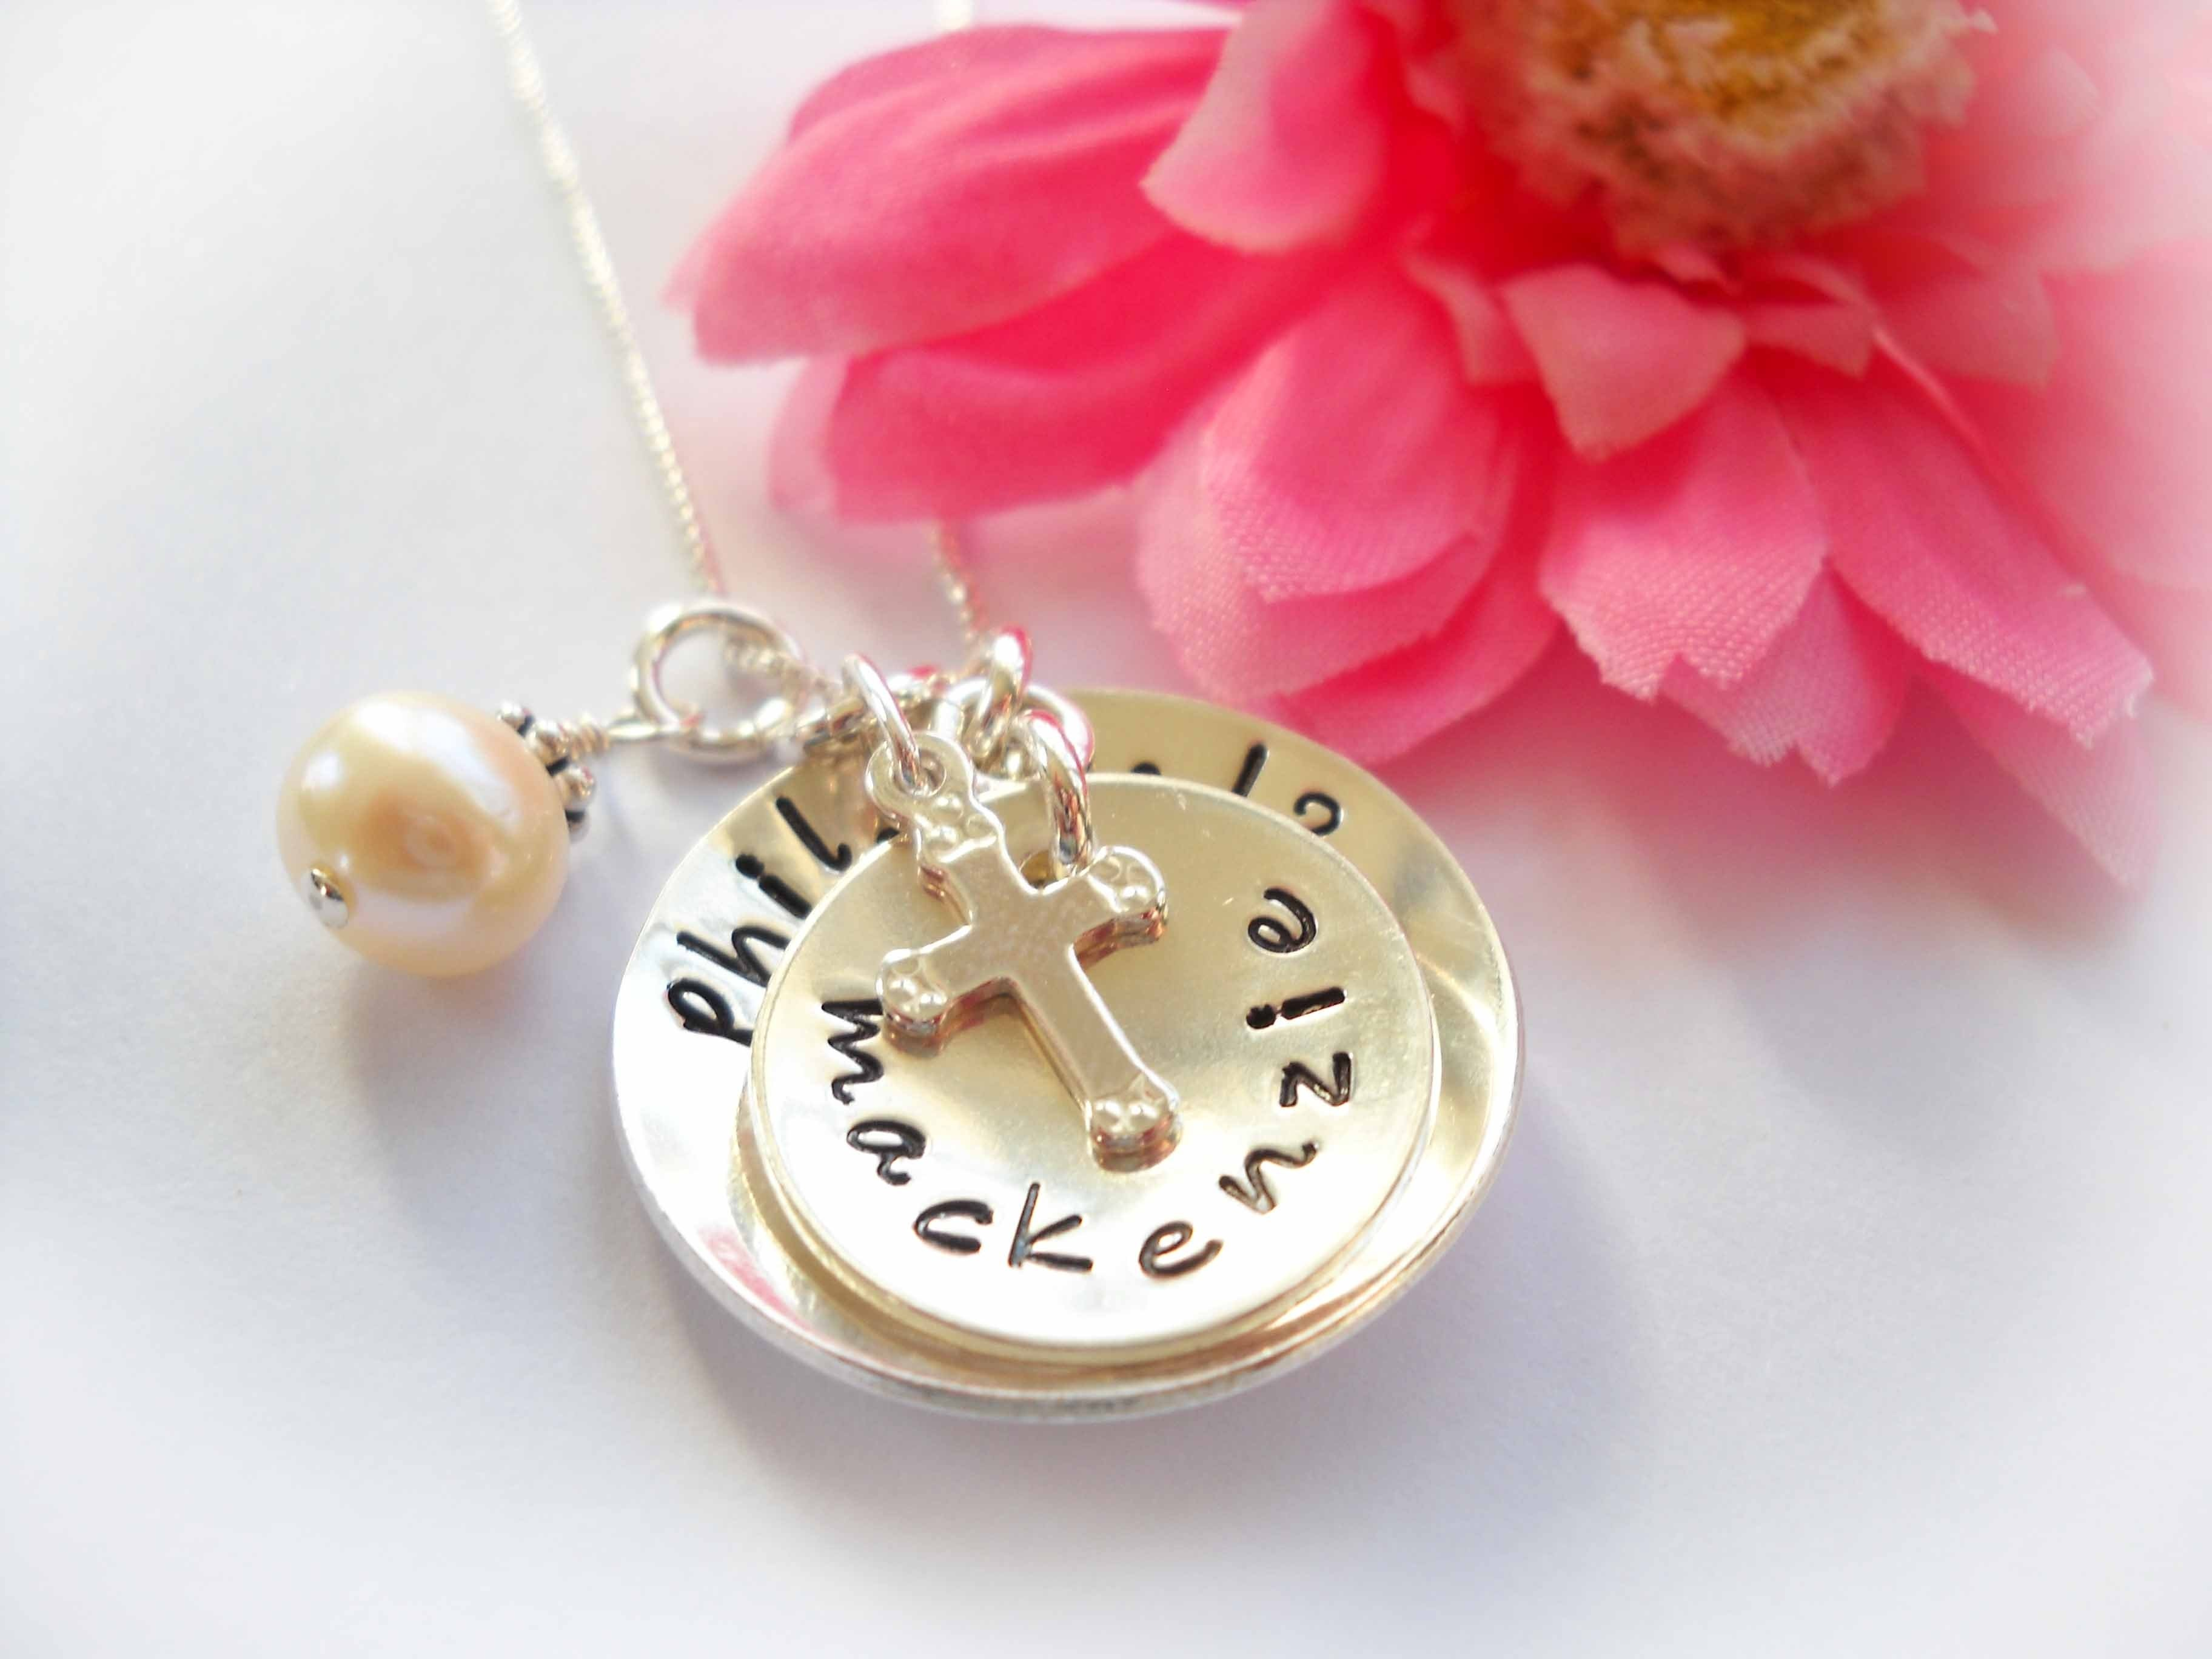 10 Awesome Confirmation Gift Ideas For Boys top ten confirmation jewelry gift ideas the christian gifts place blog 2020